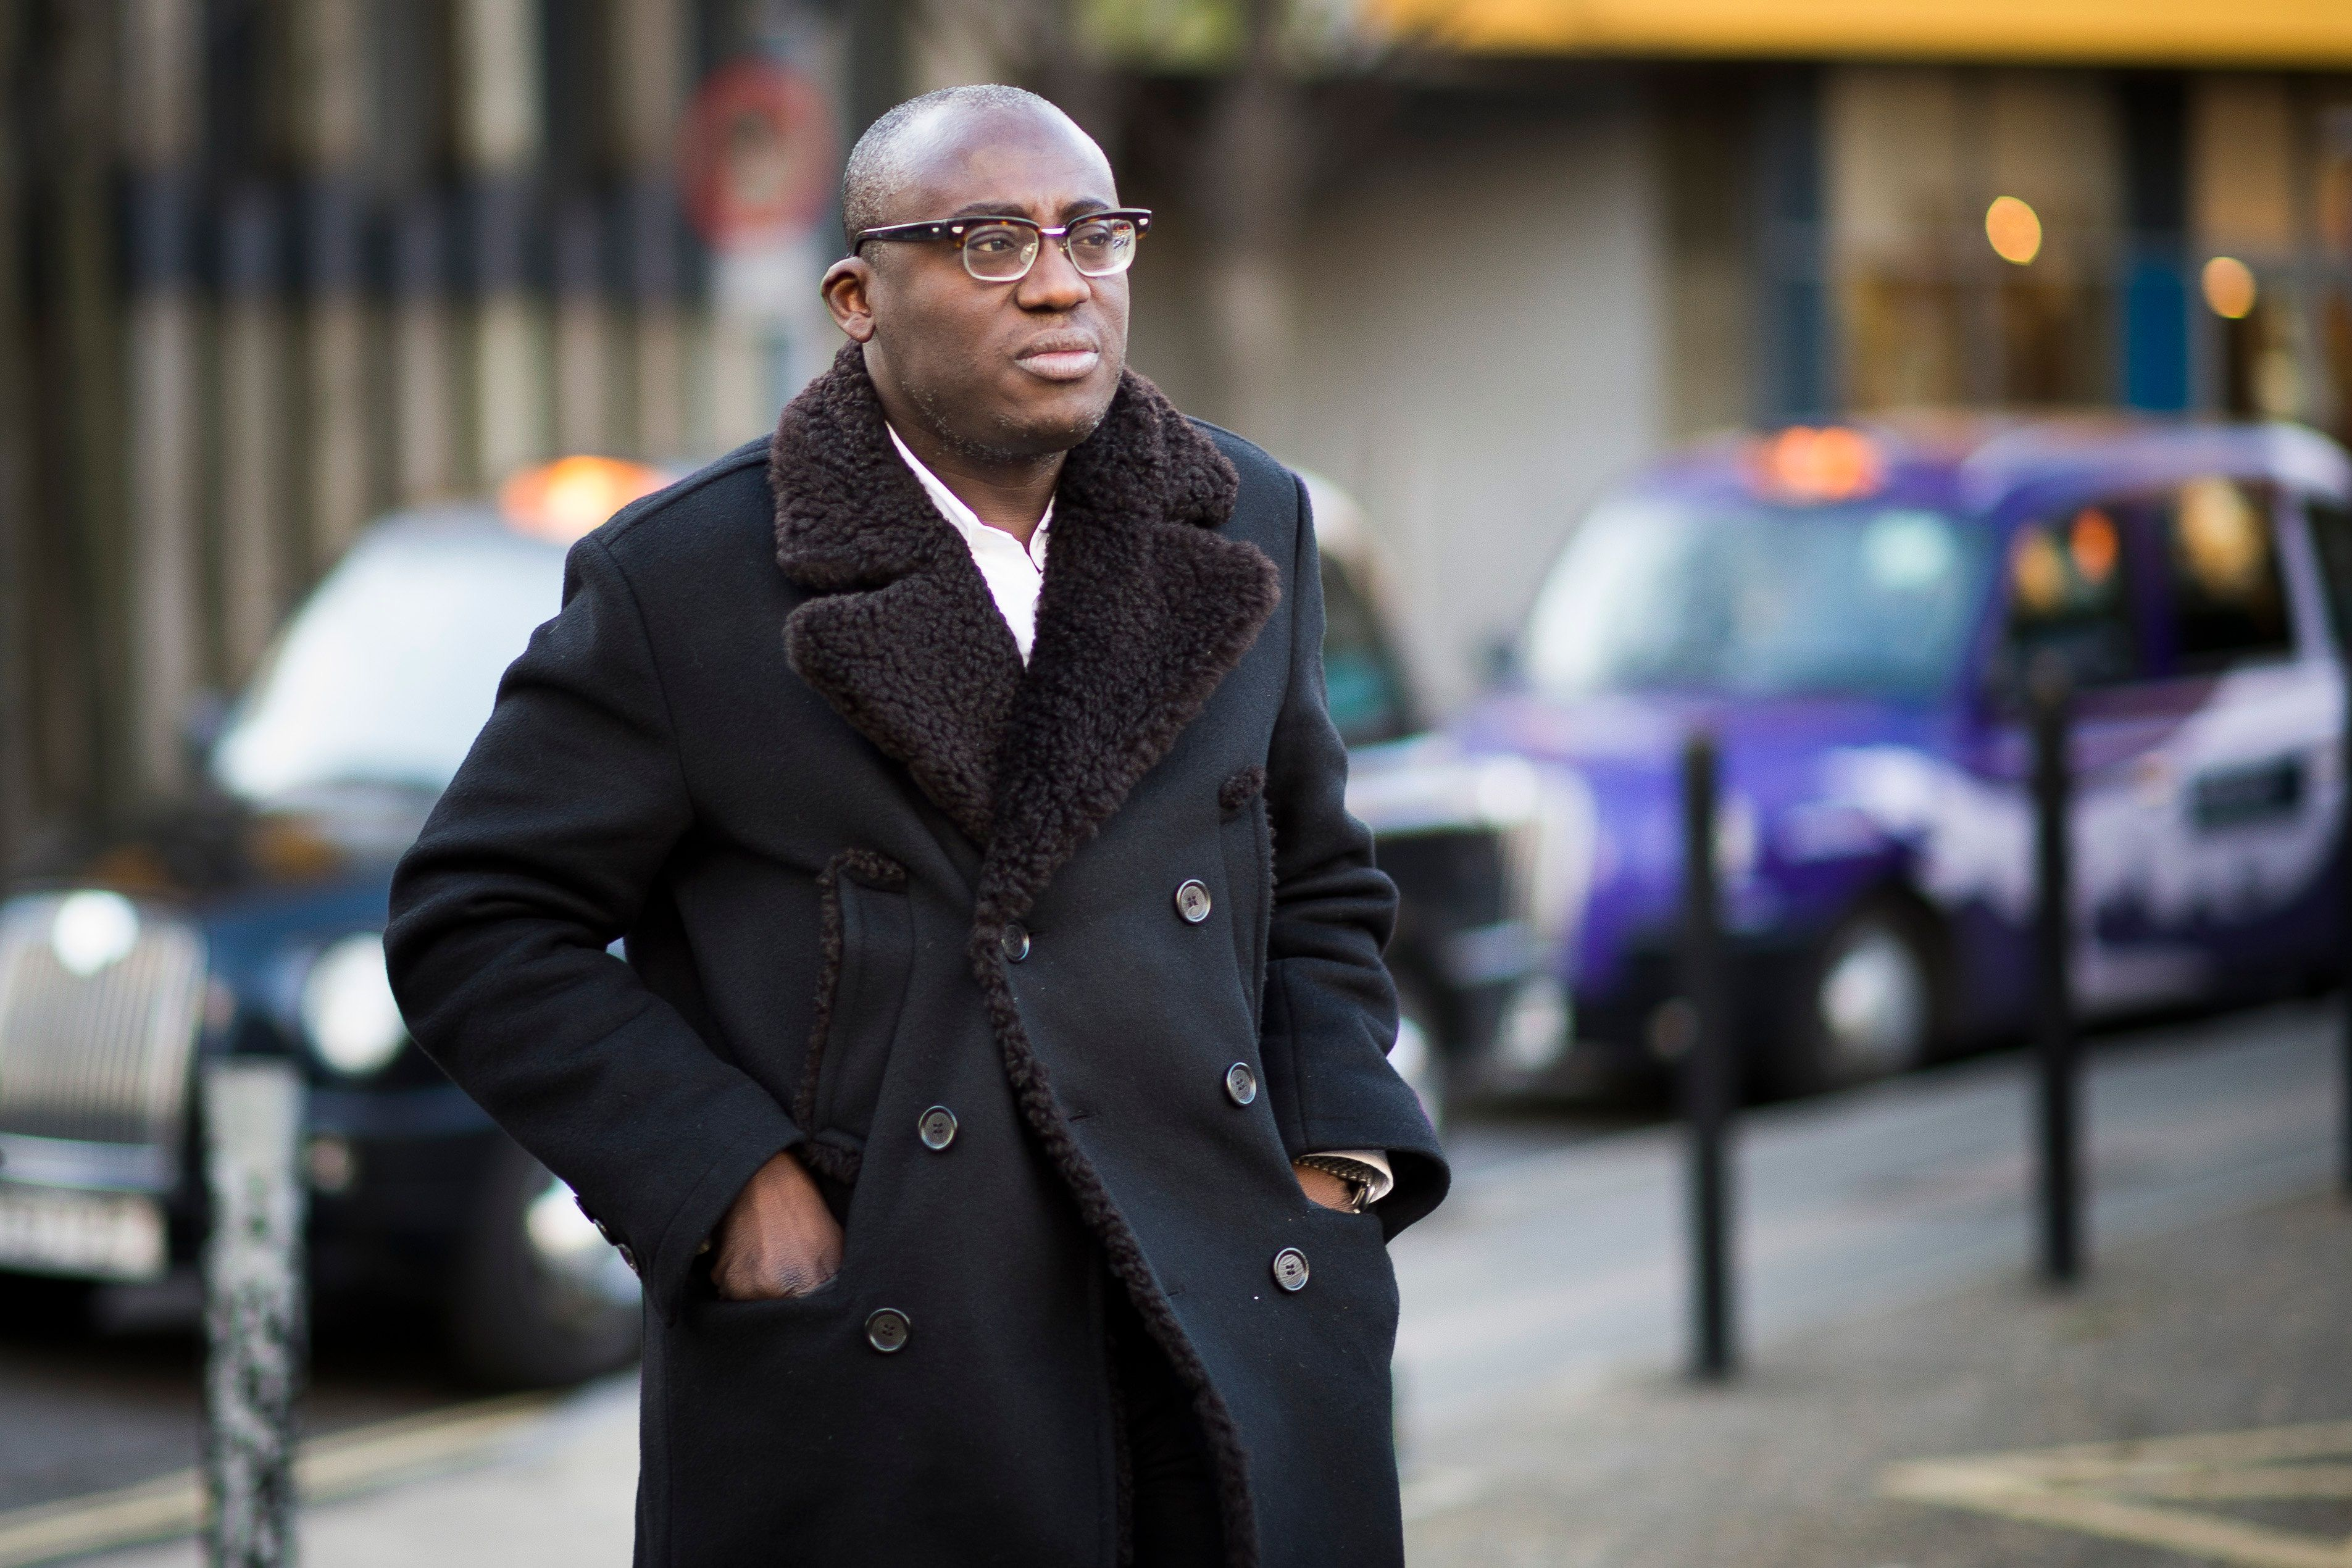 LONDON, ENGLAND - FEBRUARY 23: Edward Enninful during London Fashion Week Fall/Winter 2015/16 at  on February 23, 2015 in London, England.  (Photo by Timur Emek/Getty Images)